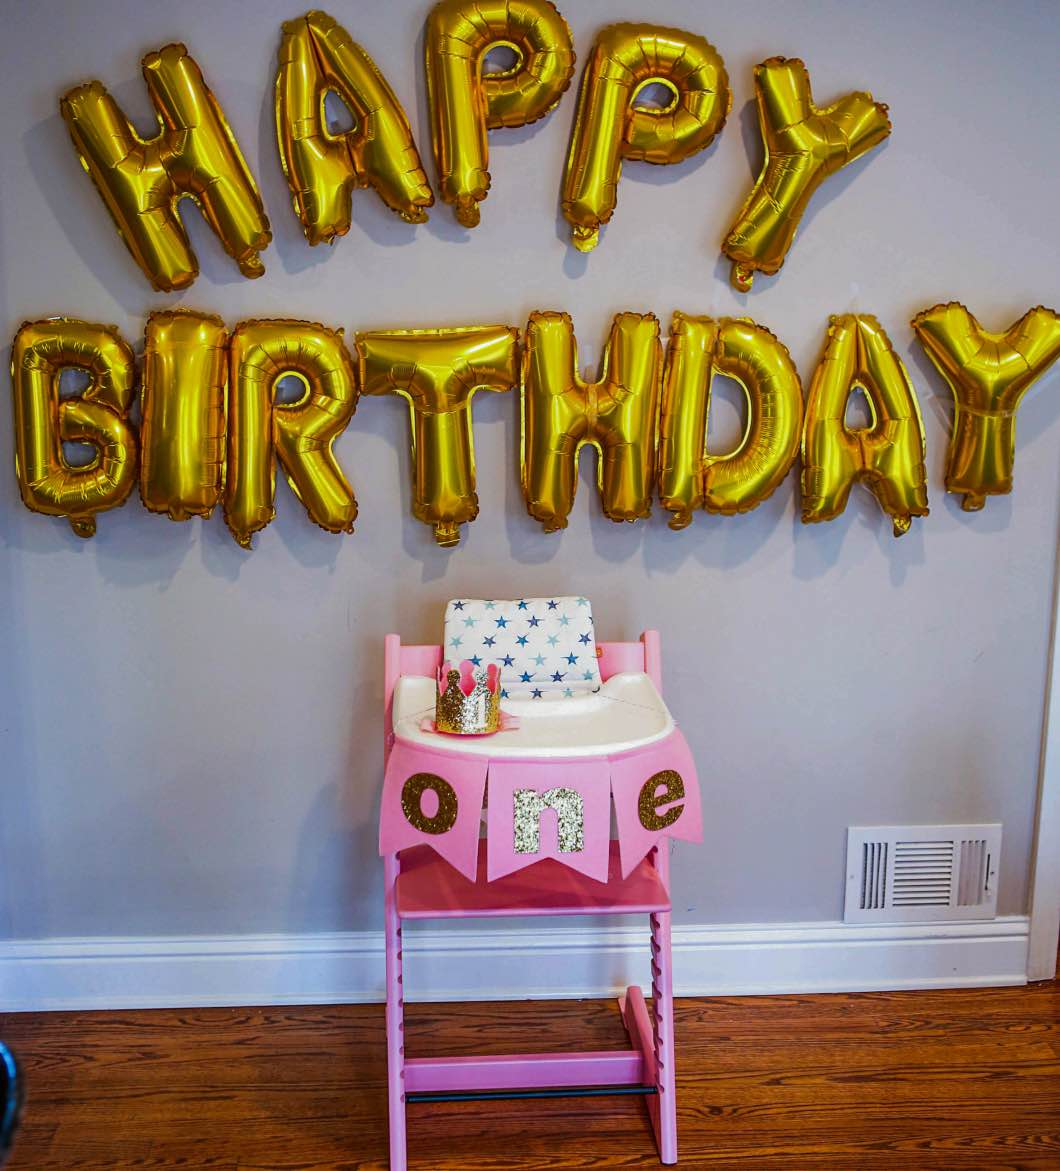 Stokke Tripp Trapp Happy Birthday